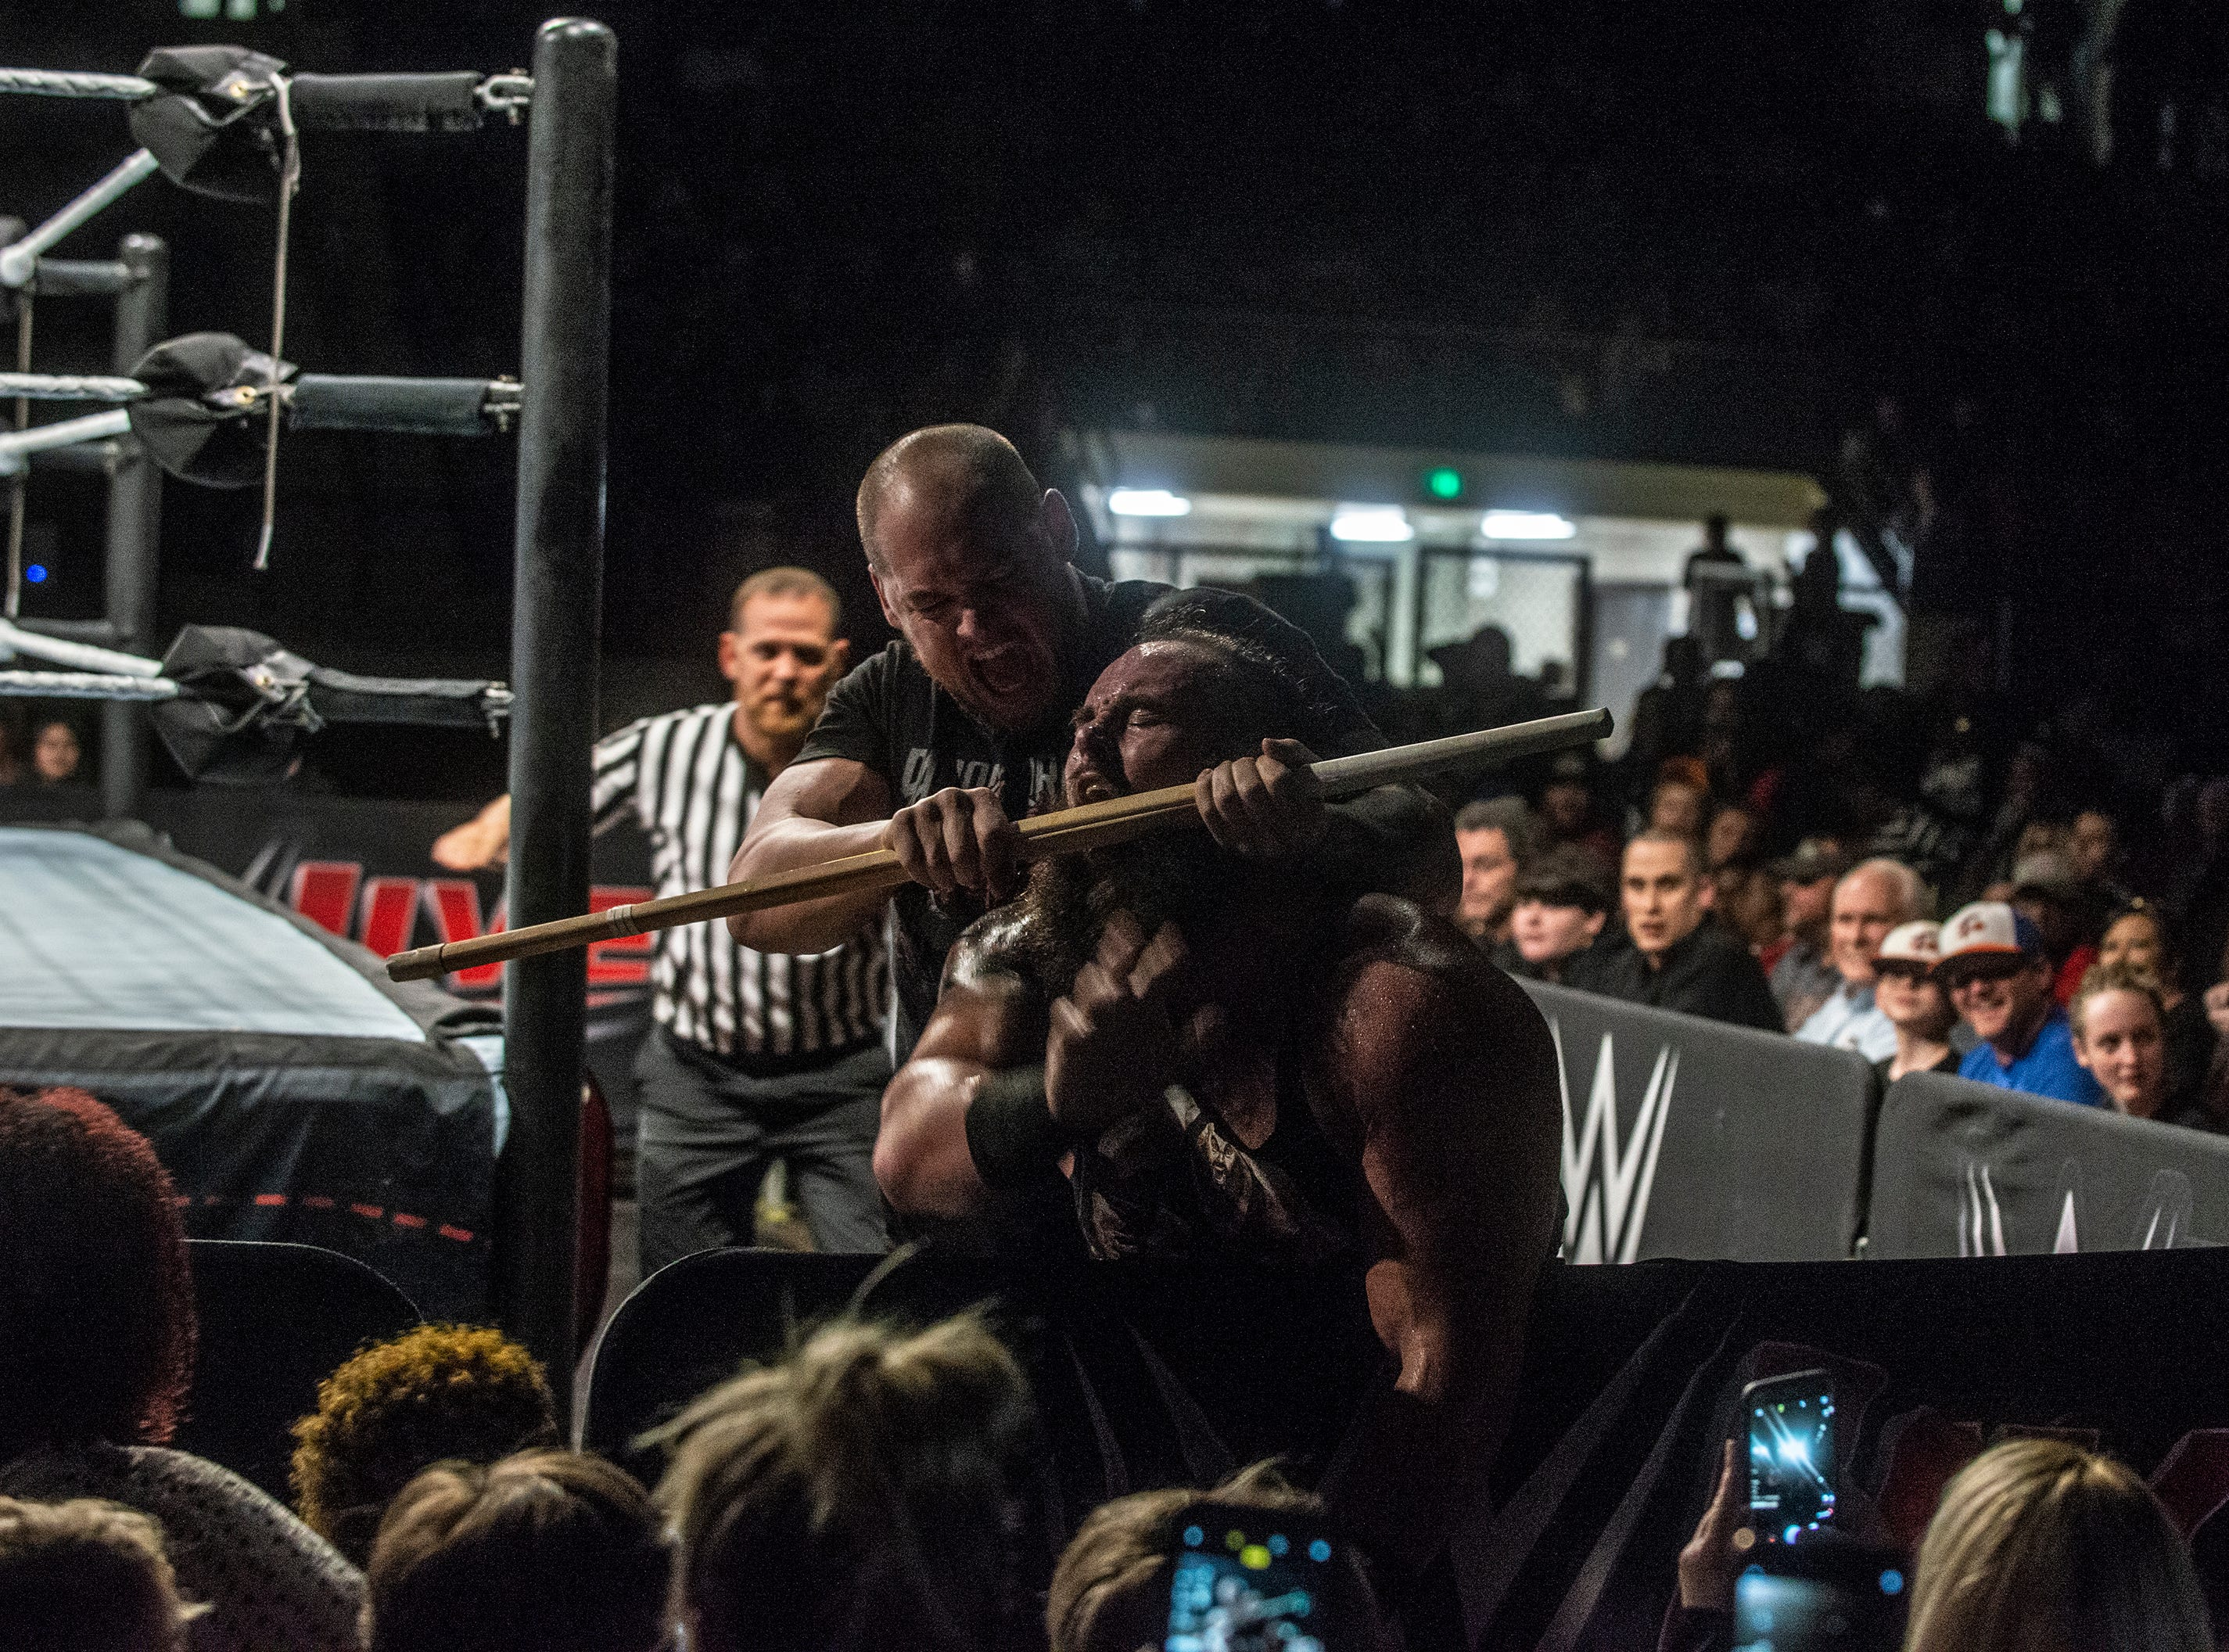 Braun Strowman is choked from behind by Baron Corbin. The main event was a street fight between Baron Corbin and Braun Strowman, with lots of of chairs, sticks and tables. WWE Live Road to Wrestlemania came to Garrett Coliseum in Montgomery on Sunday, Feb. 24, 2019.